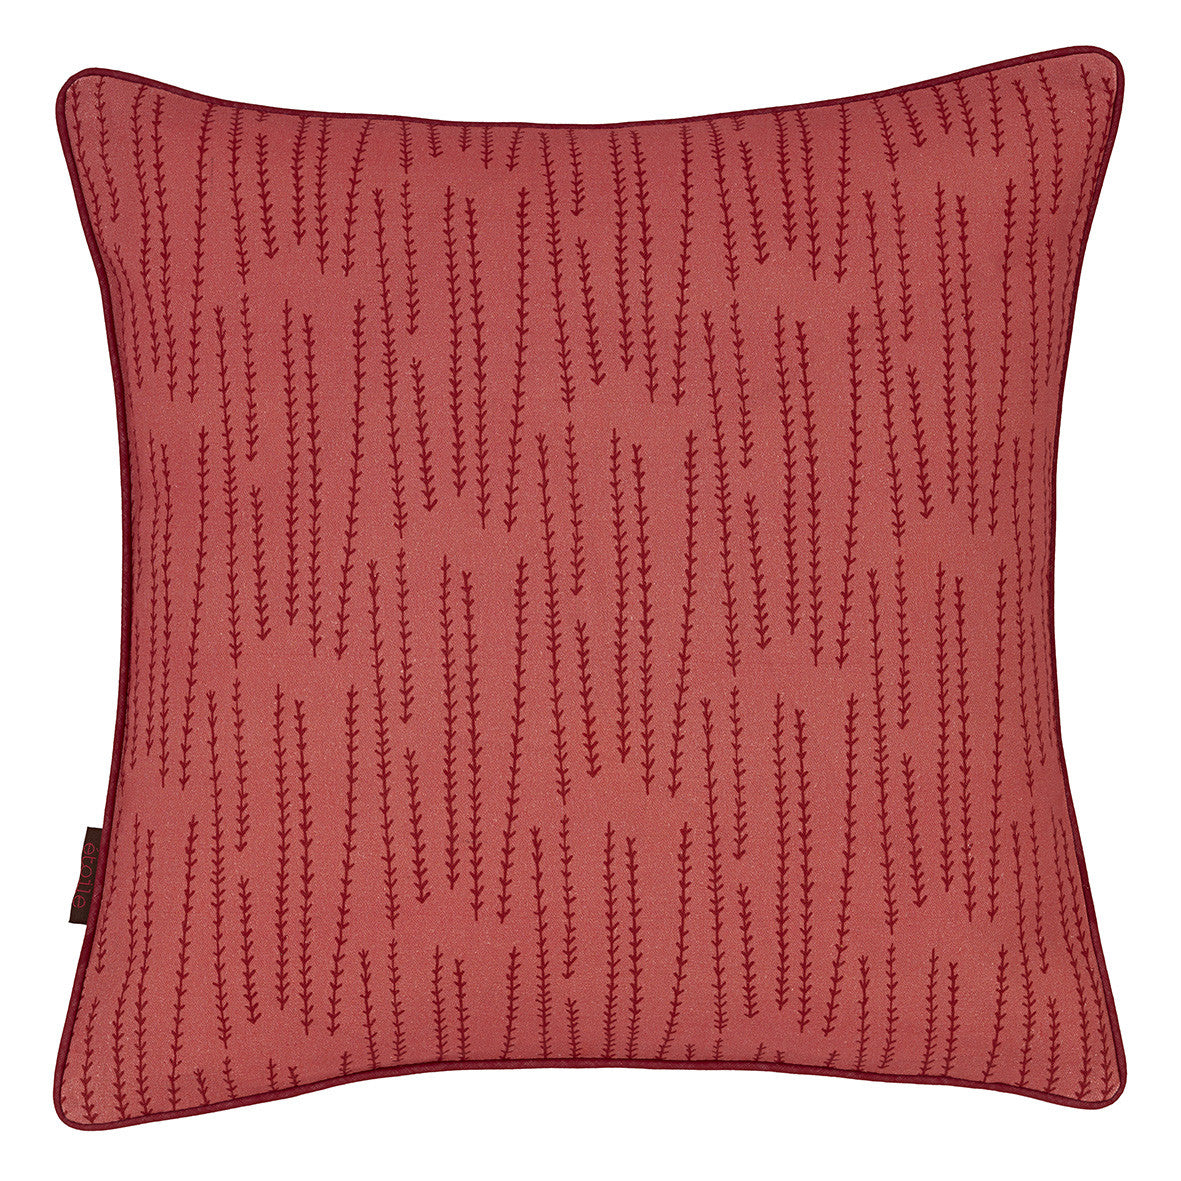 Graphic Rosemary Pattern Linen Union Printed Throw Pillow in Coral Pink and Vermilion Red Ships from Canada worldwide including the USA